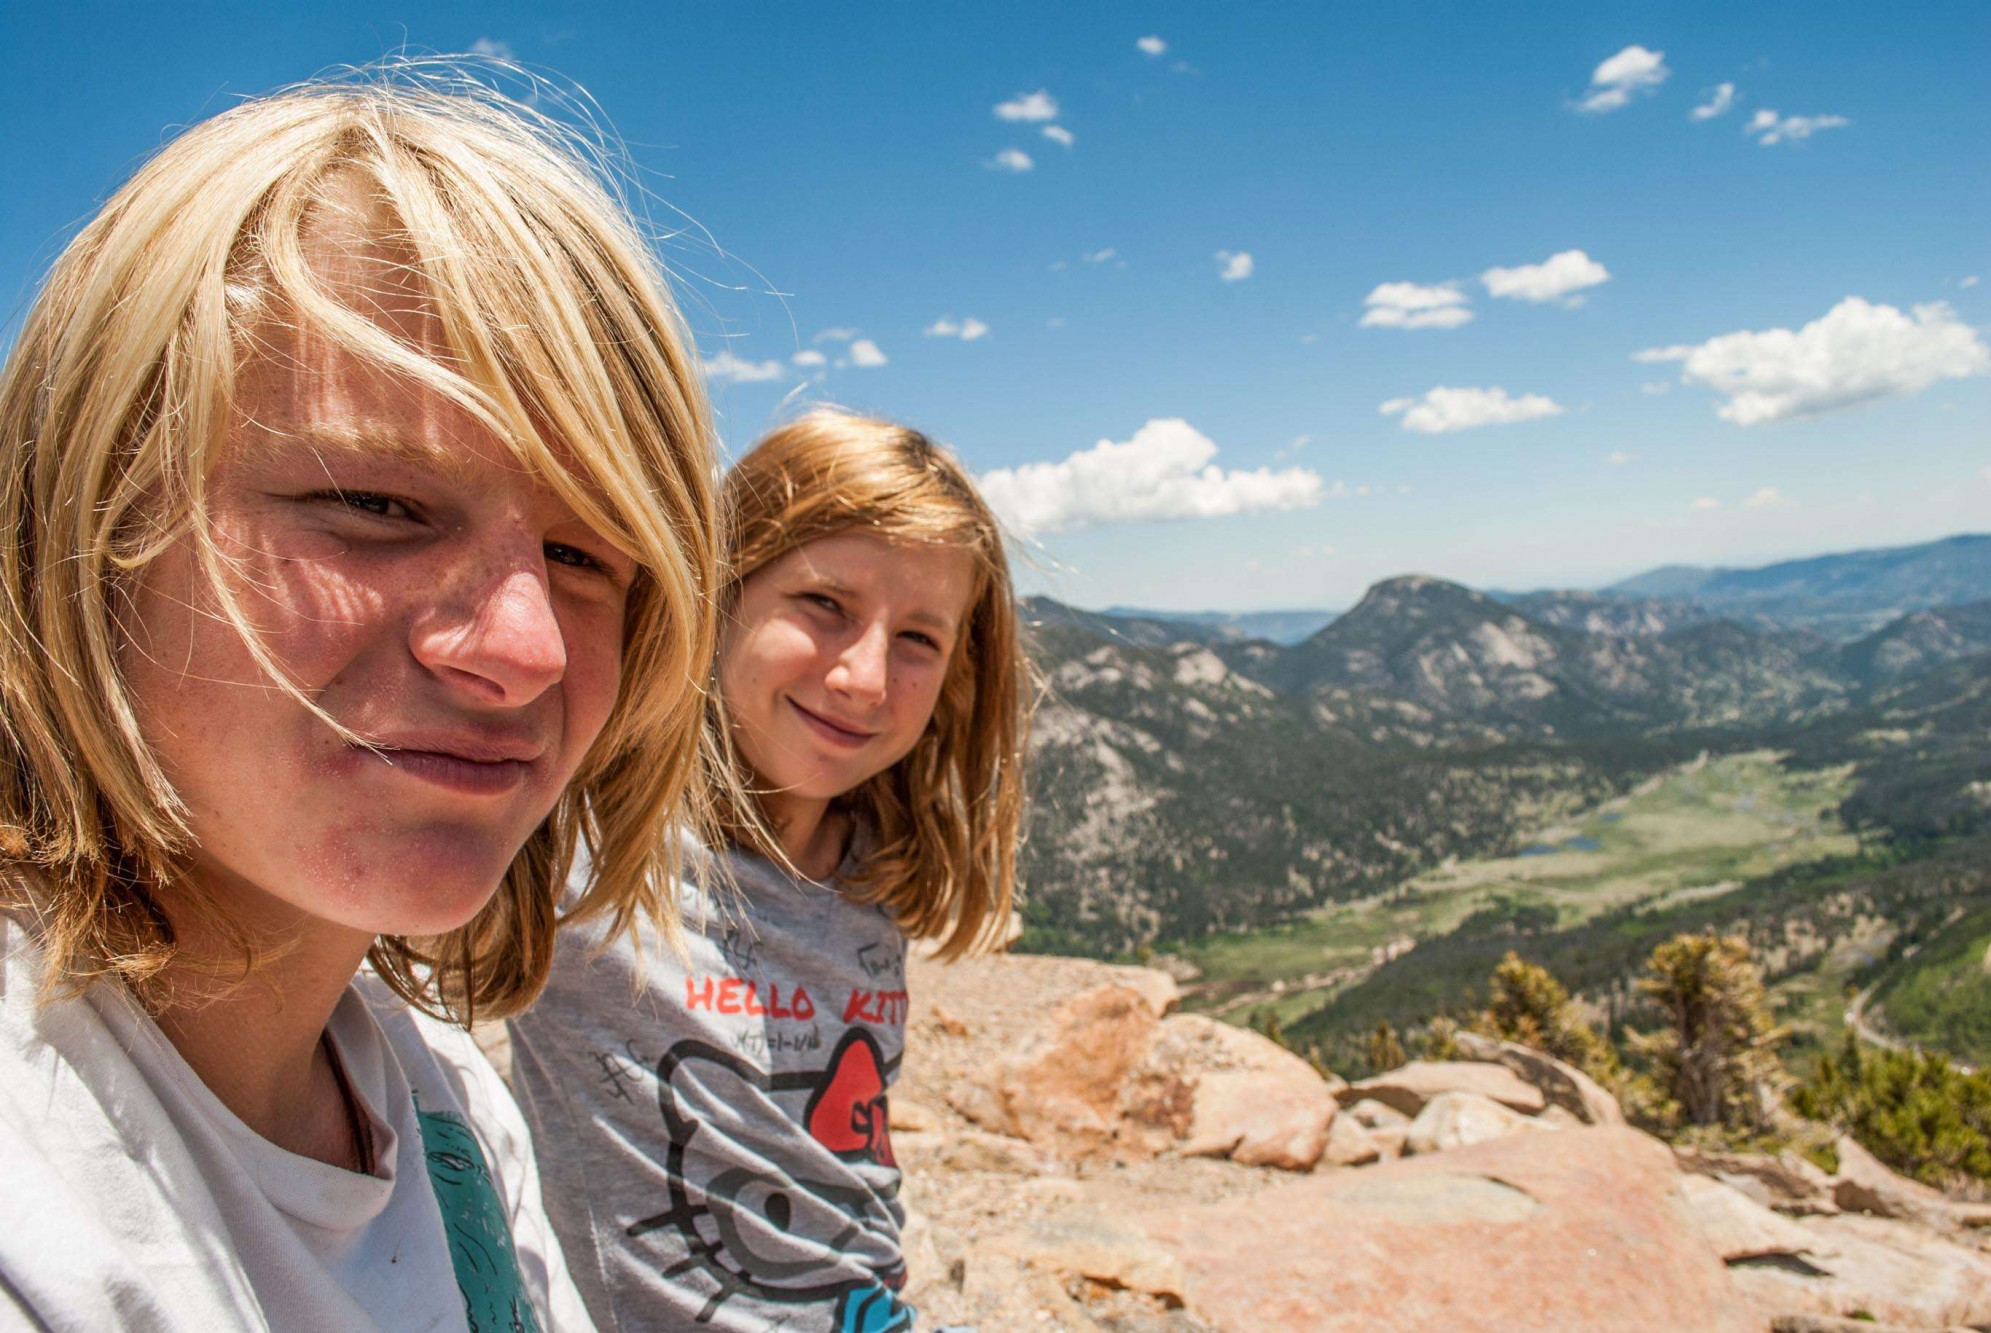 Keelan and Jessica, Rocky Mountain NP